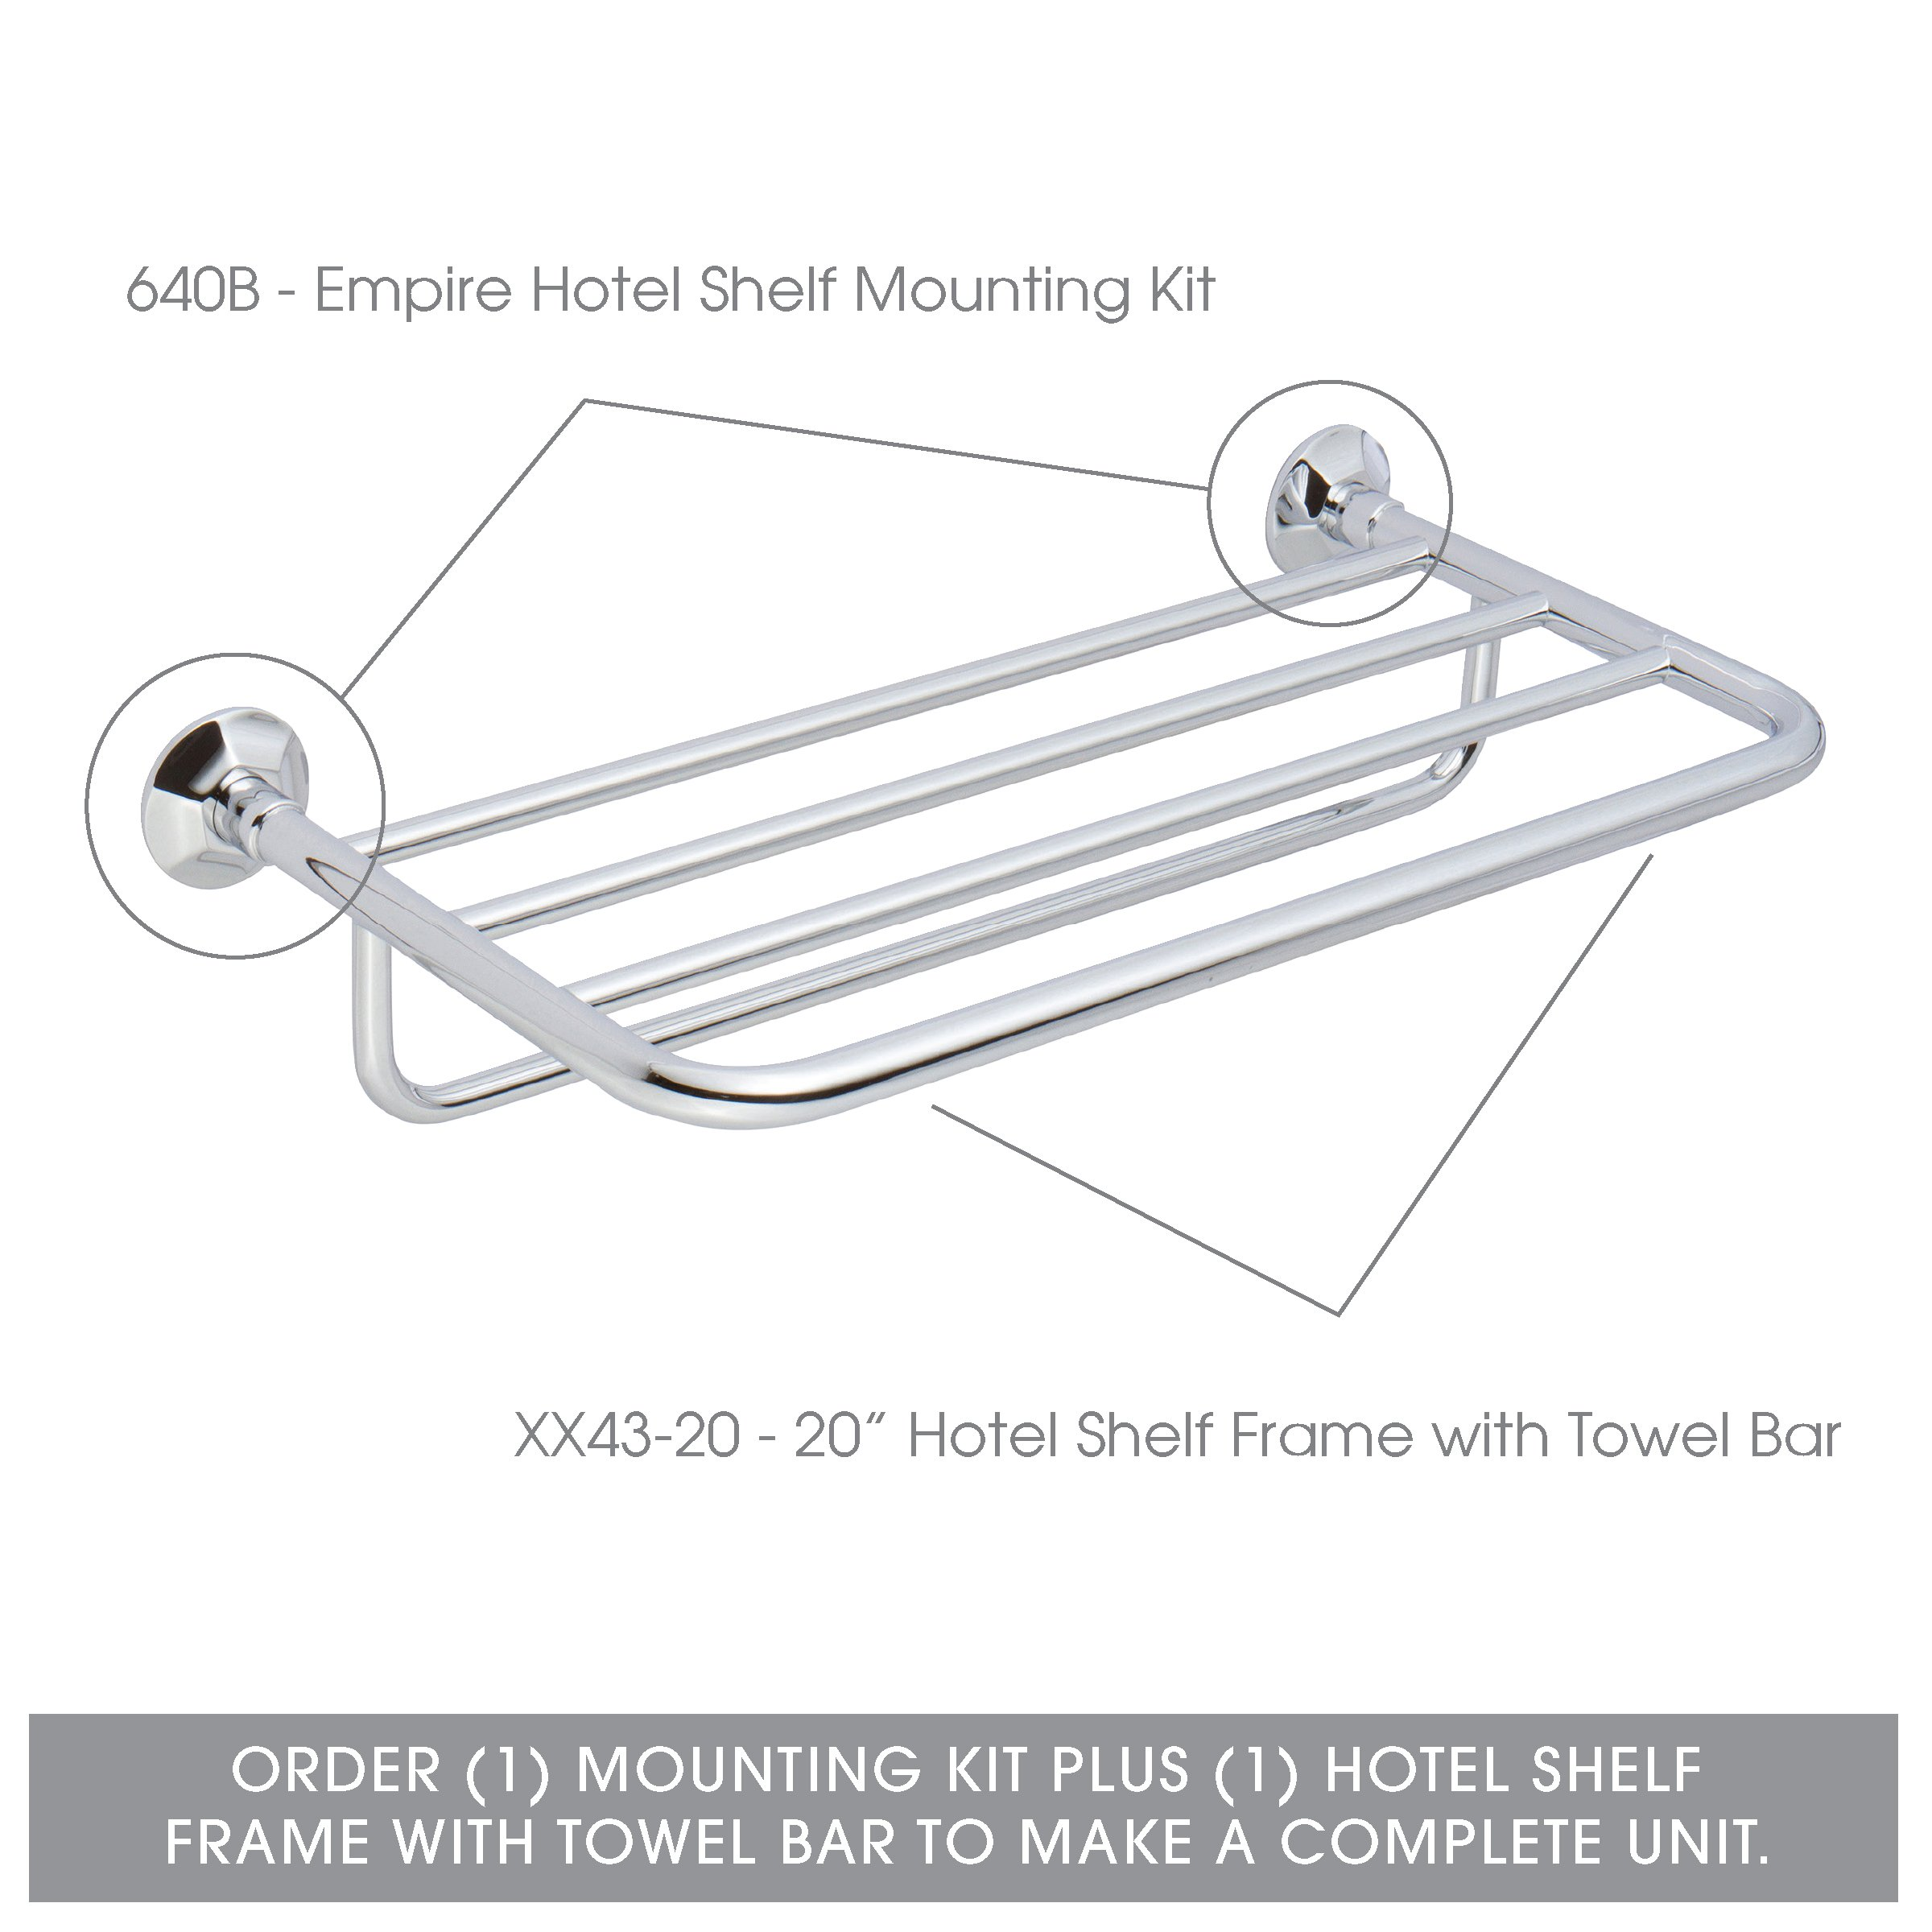 Ginger Empire Hotel Shelf Mounting Kit - 640B/PC - Wall Mounted Towel Rack Trim Brackets - Polished Chrome - Mounting Kit Only by Ginger (Image #2)